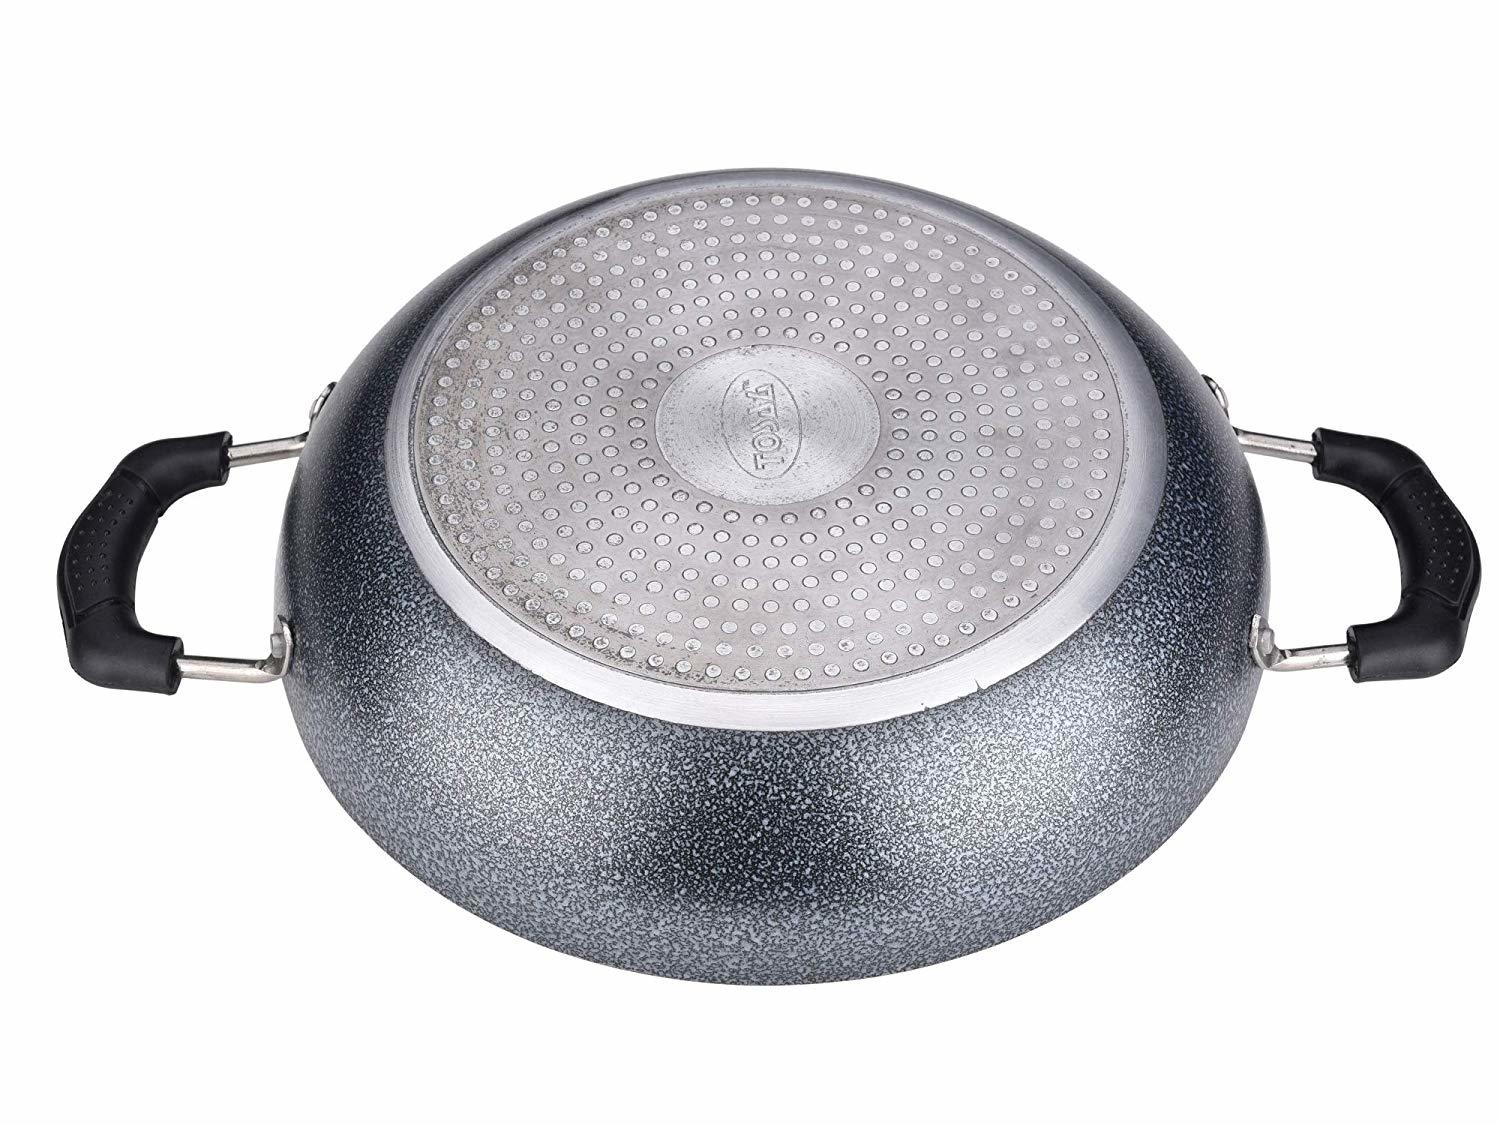 Tosaa Non-Stick 2 Litre Kadhai with Glass Lid, 24 cm (Induction and Gas Compatible), Black